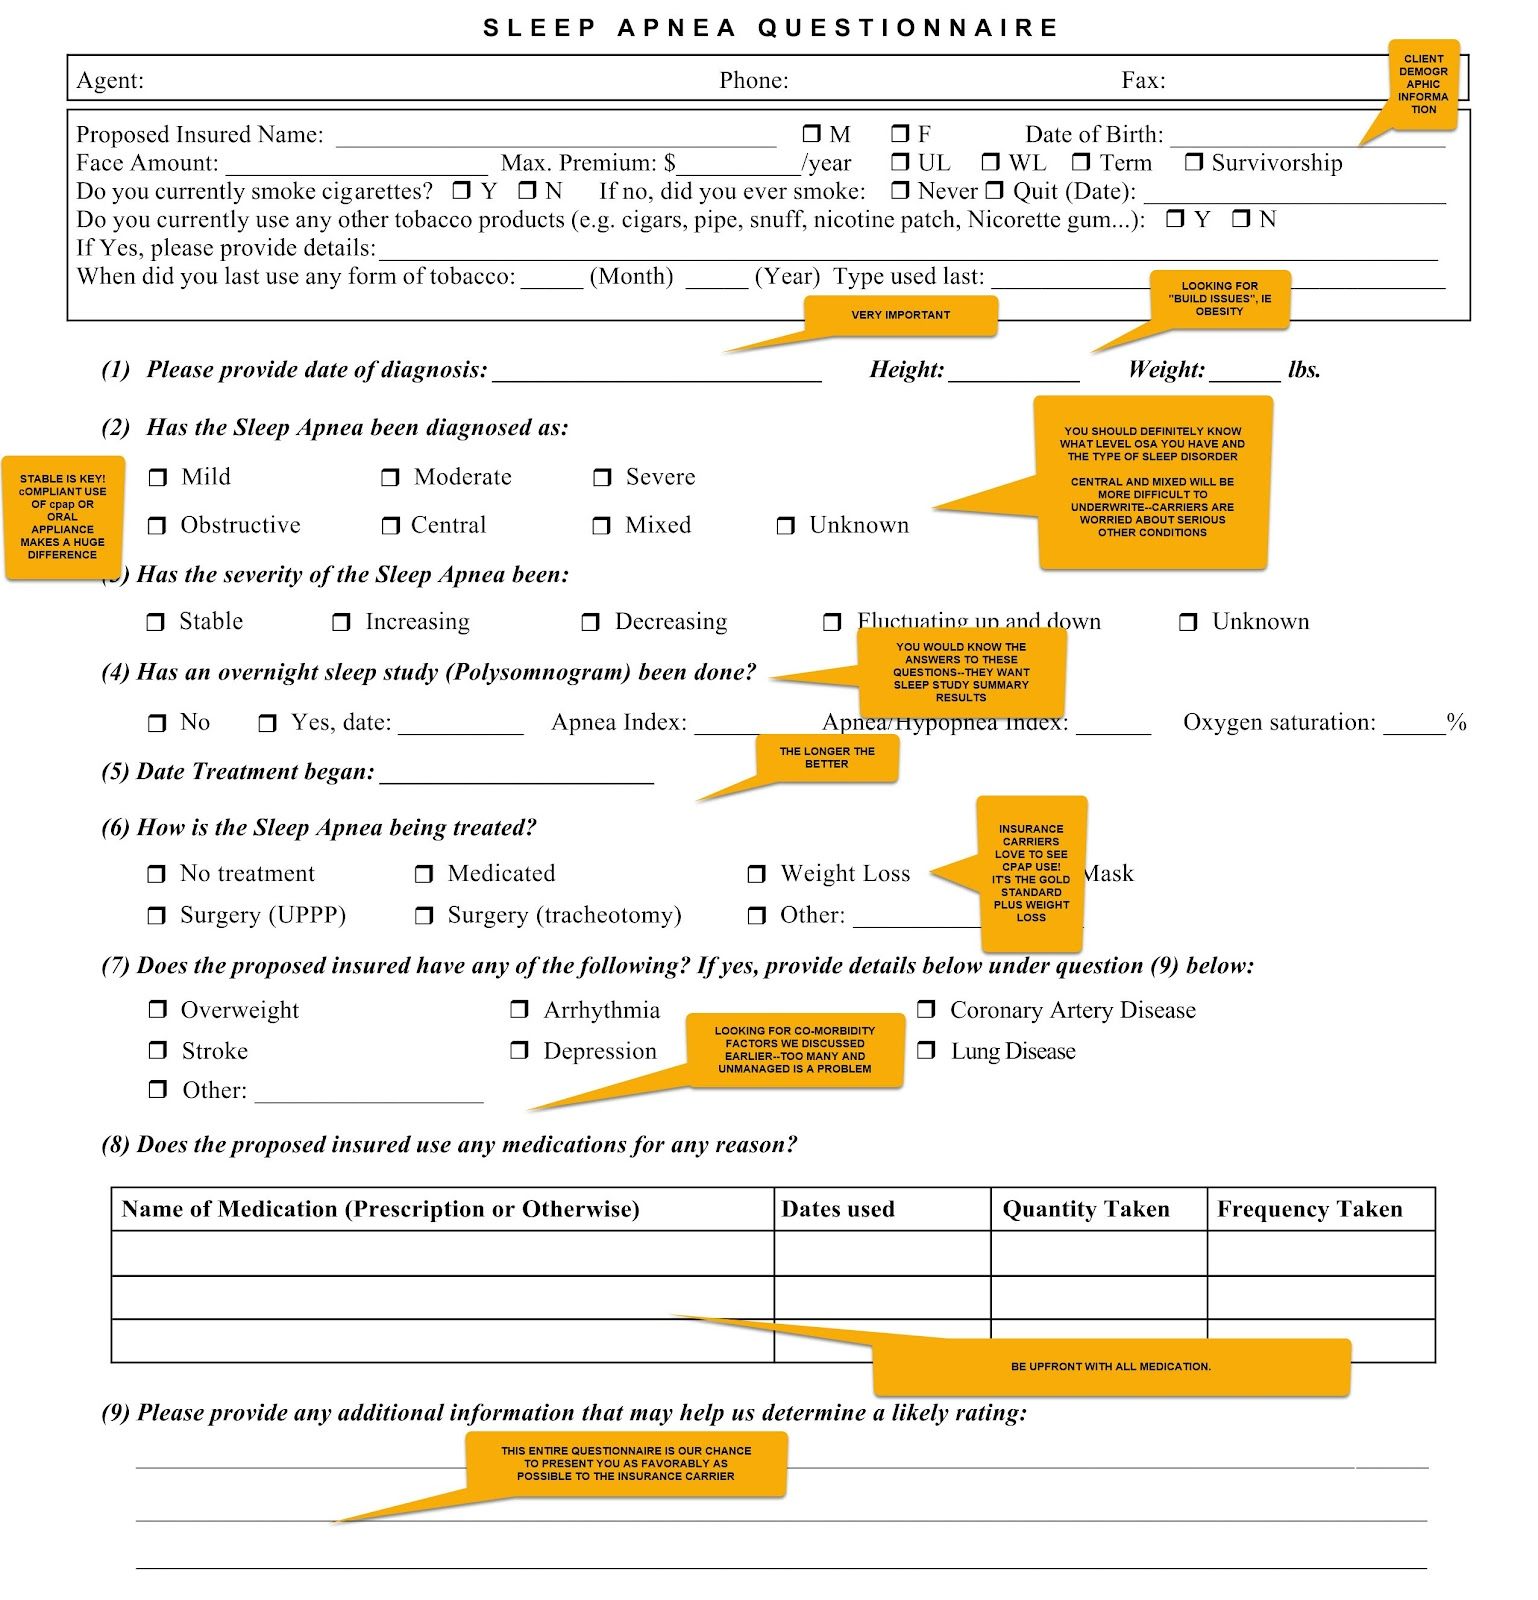 sleep apnea life insurance questionnaire